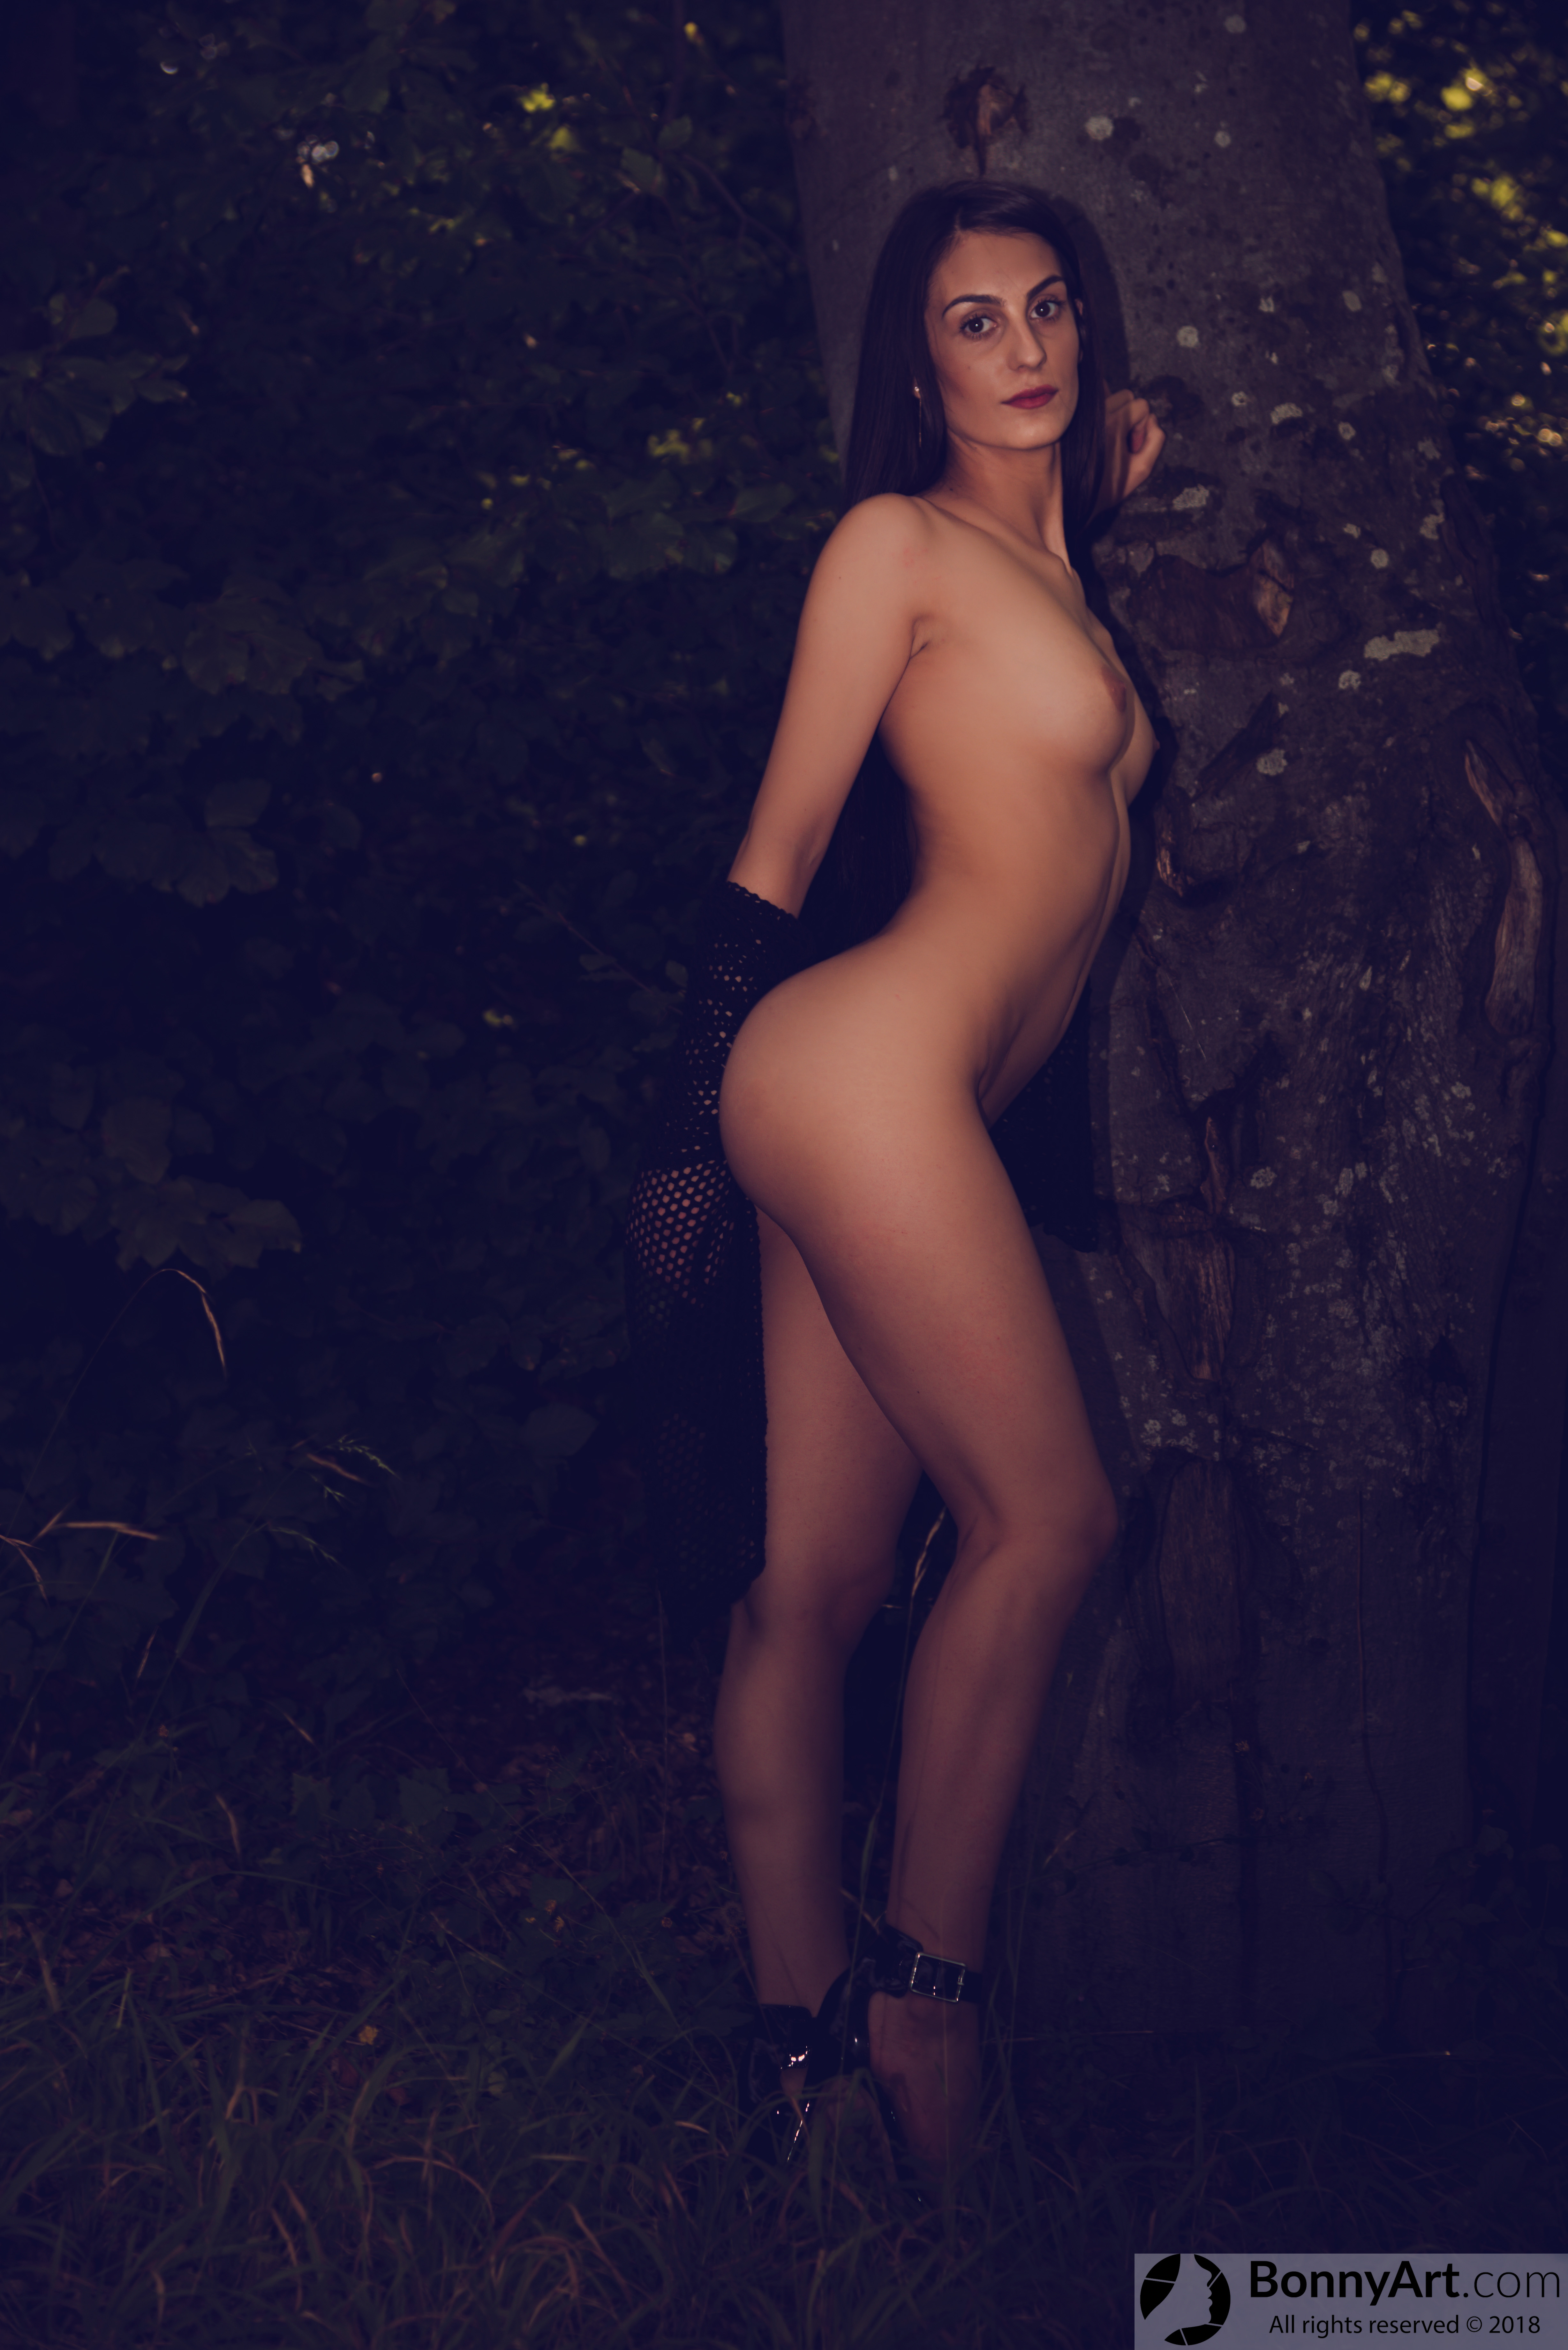 Tall Naked Girl Showing her Curves in the Forest HD